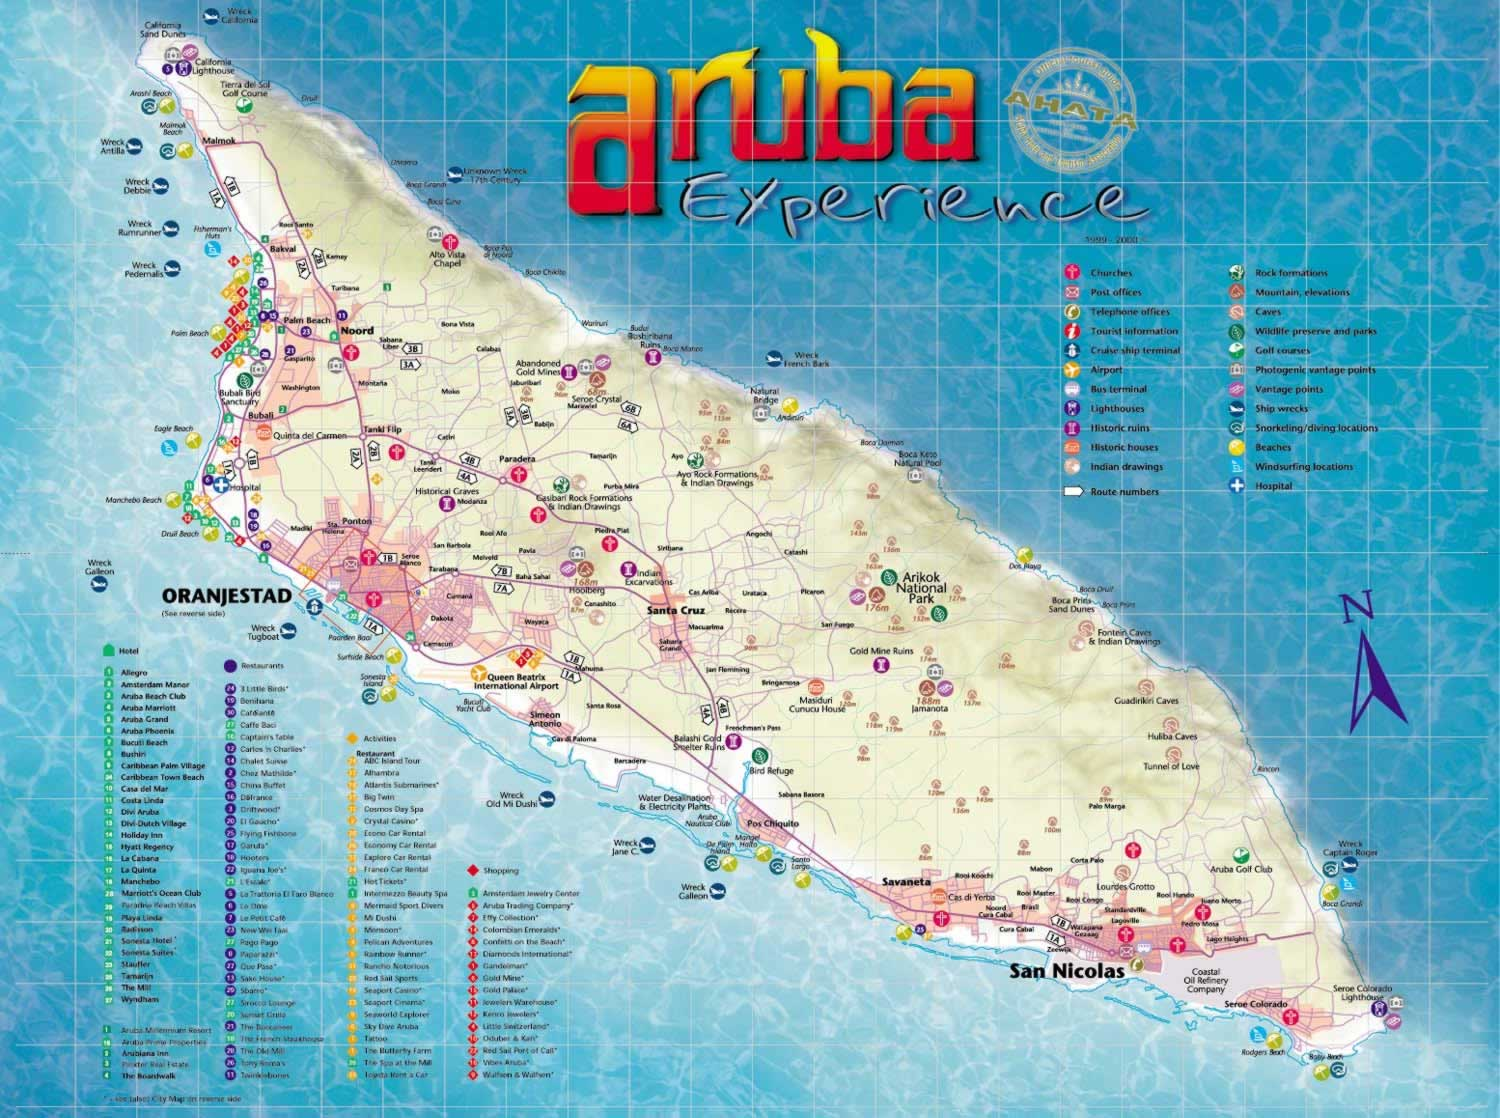 Aruba-Tourist-Map-2 | Weltatlas